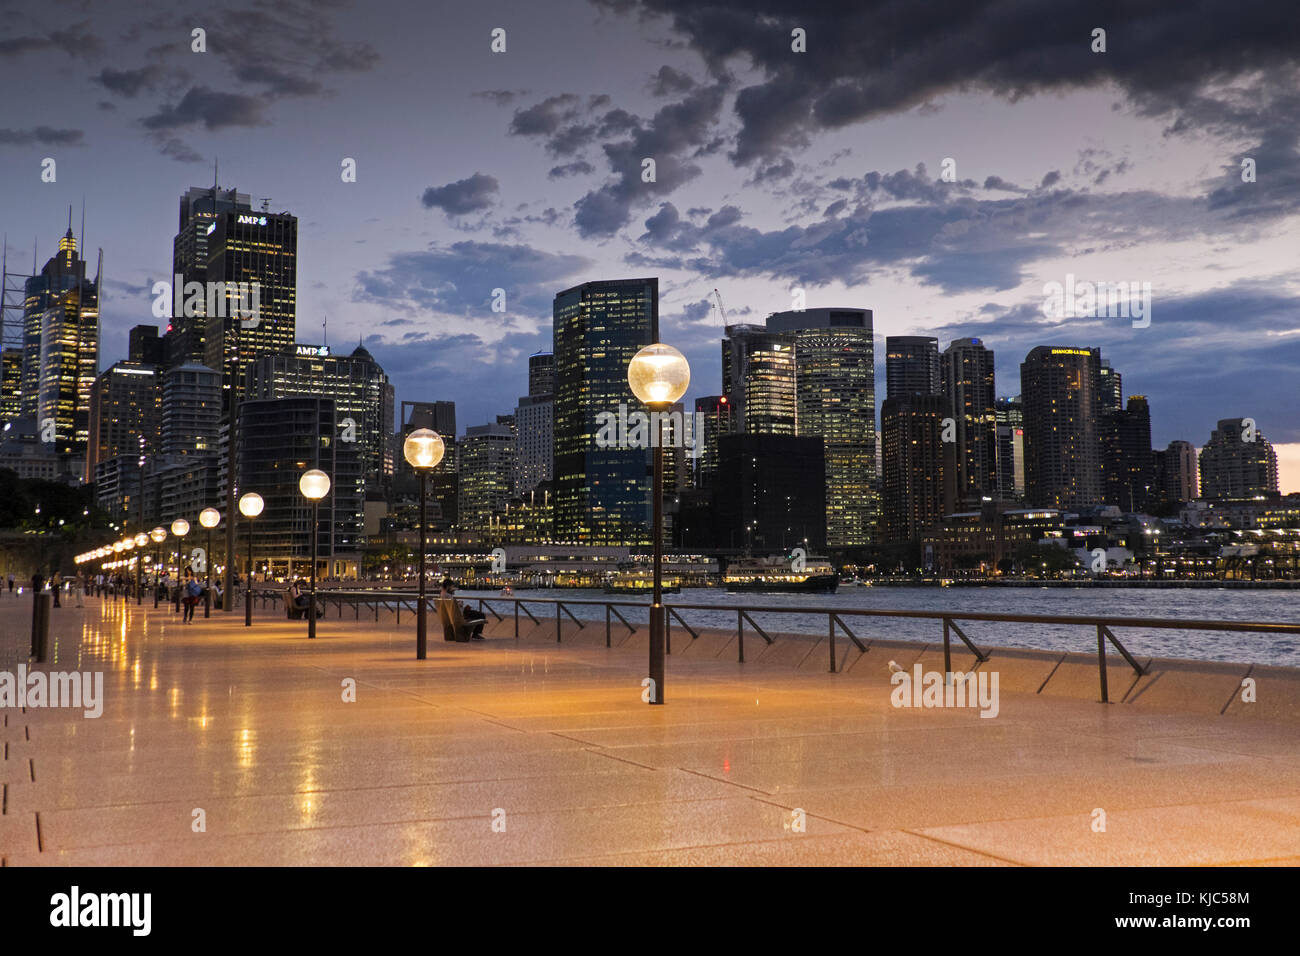 Seaside Promenade and Sydney skyline at dusk at the Circular Quay in Australia - Stock Image